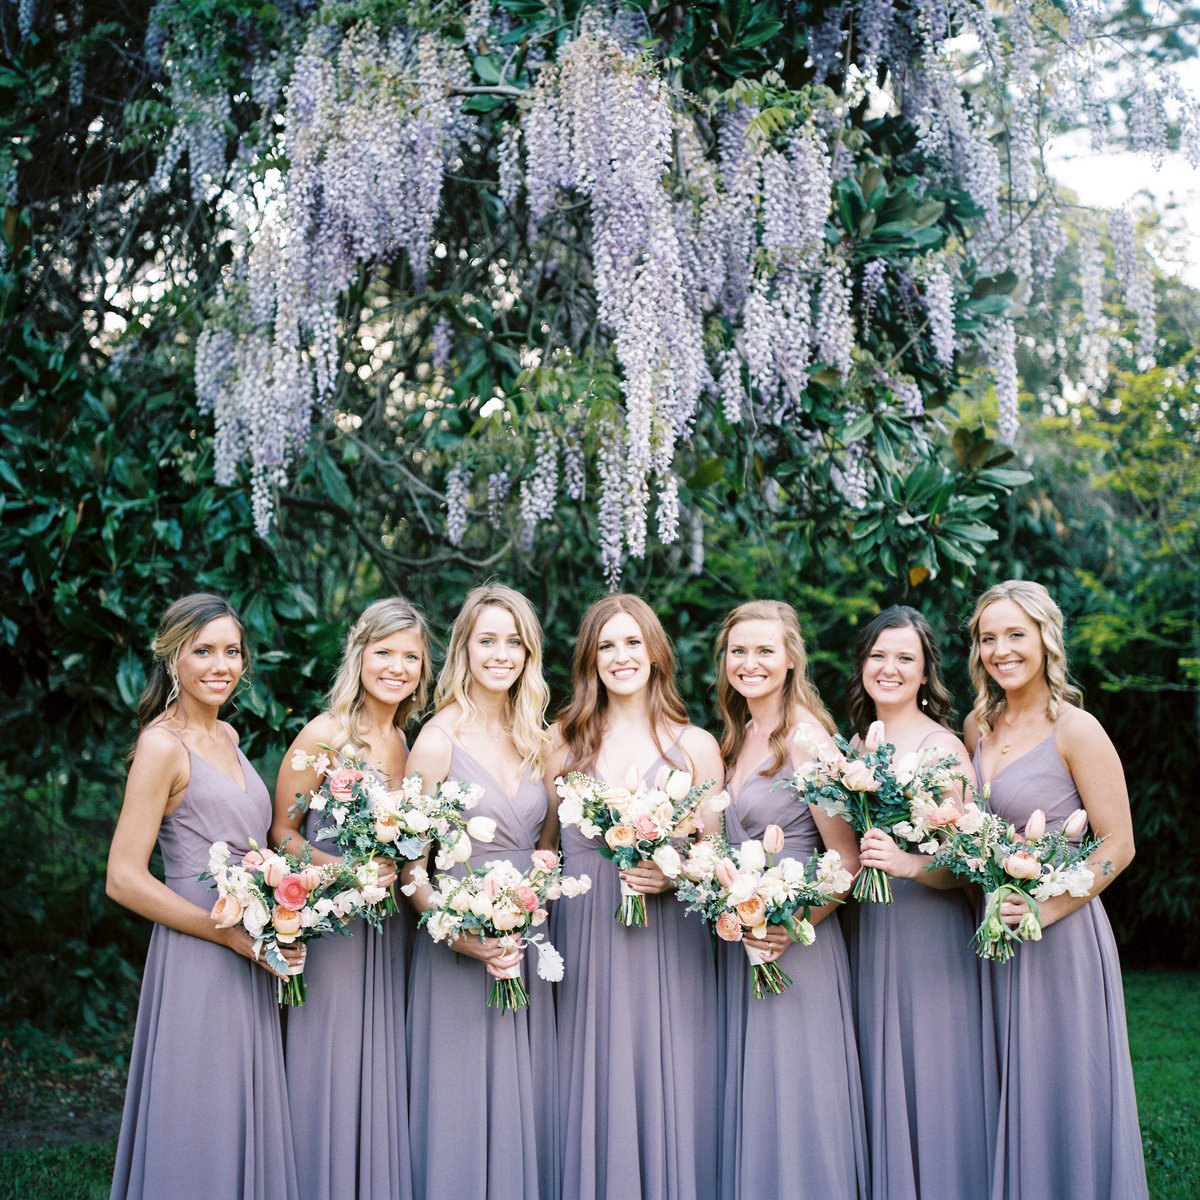 charleston-wedding-venues-magnolia-plantation-philip-casey-photography-030